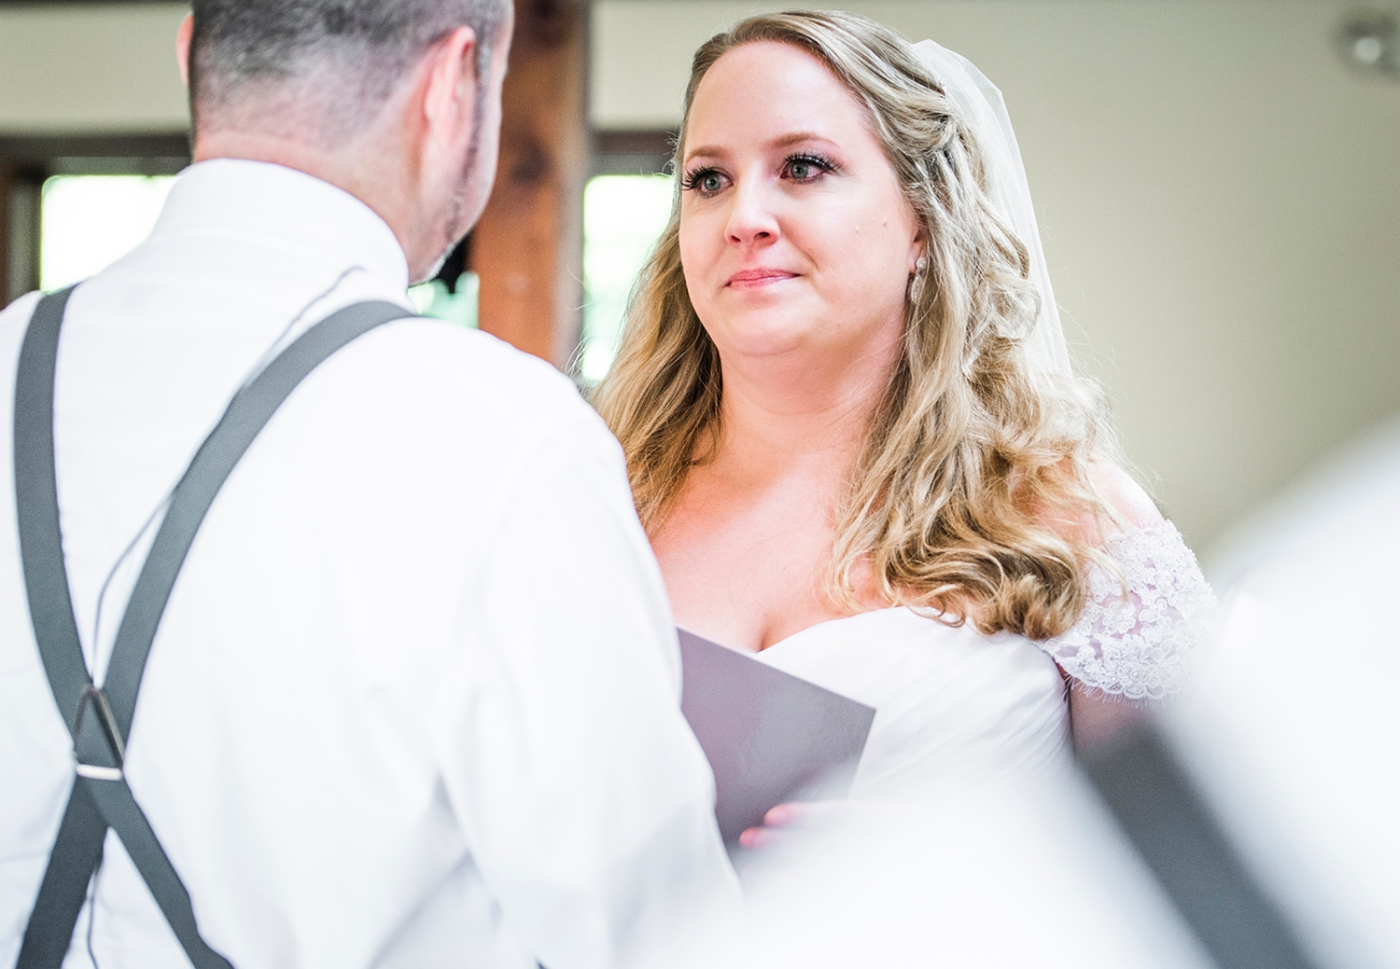 Jane_S_photography_Katie_and_Steve_2016_Des_Moines_Marina_Wedding_JS7_9325